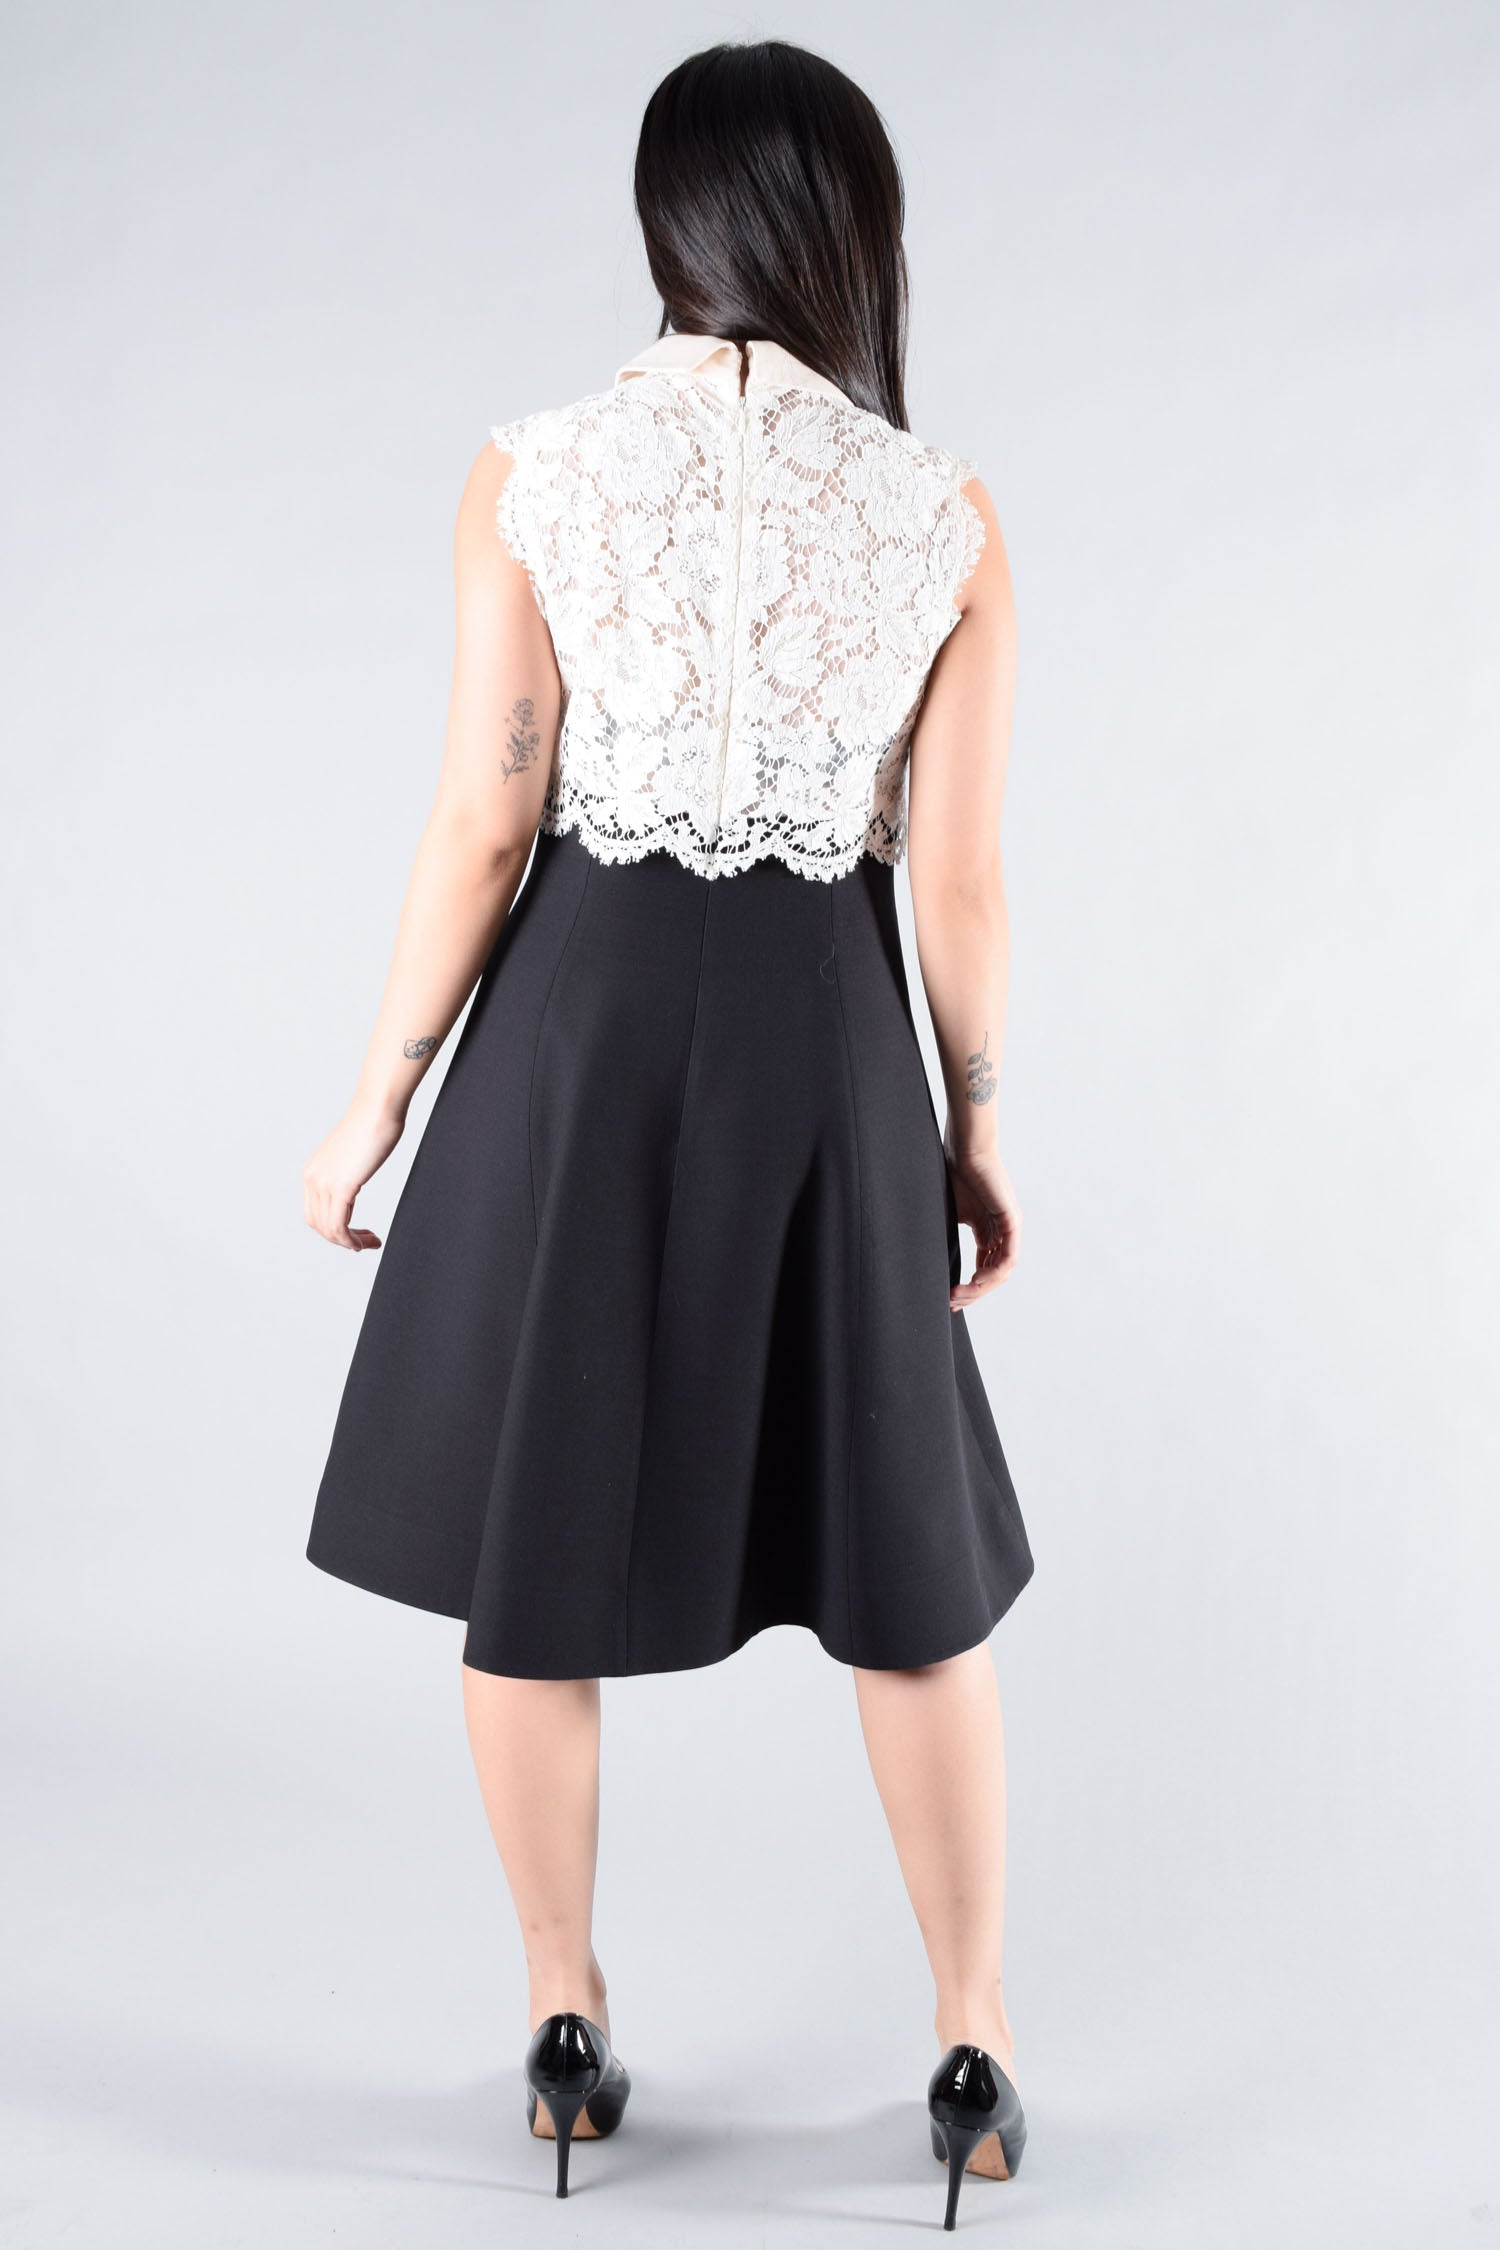 Valentino White/Black Lace Sleeveless Dress w/ Bow Size 4